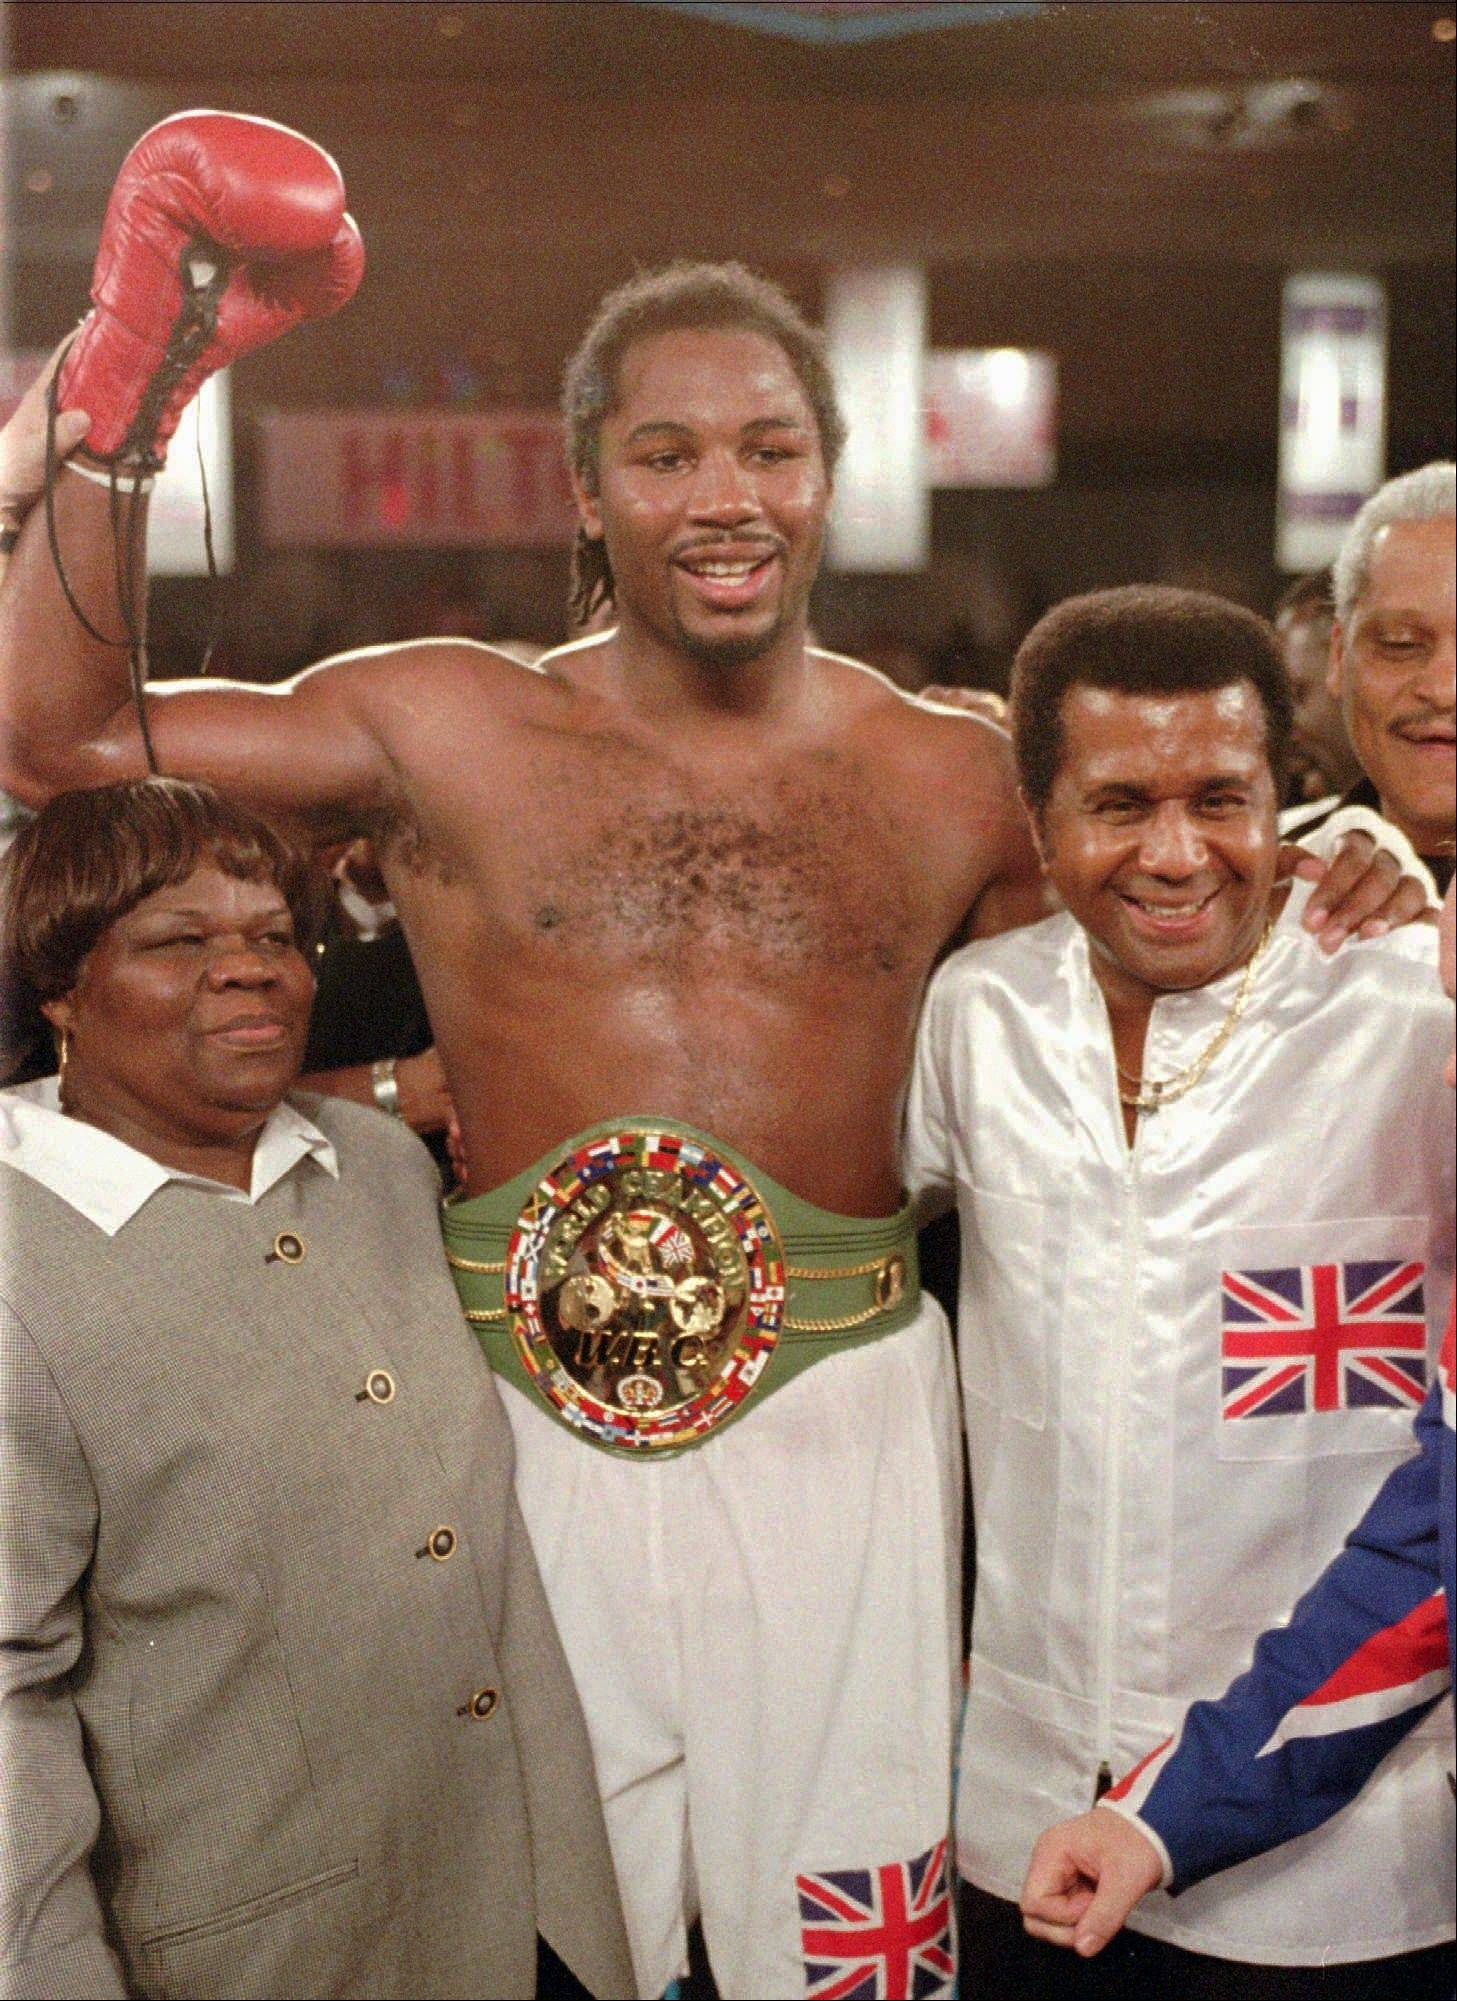 File-This Feb. 7, 1997 file photo shows newly crowned WBC heavyweight champion Lennox Lewis, center, reacting with his mother, left, and trainer Emanuel Steward after defeating Oliver McCall with a TKO in the fifth round at the Hilton Hotel in Las Vegas. teward, the owner of the legendary Kronk Gym and one of boxing's greatest trainers, has died. He was 68. Victoria Kirton, Steward's executive assistant, says Steward died Thursday Oct. 25, 2012 in a Chicago hospital. She did not disclose the cause of death.